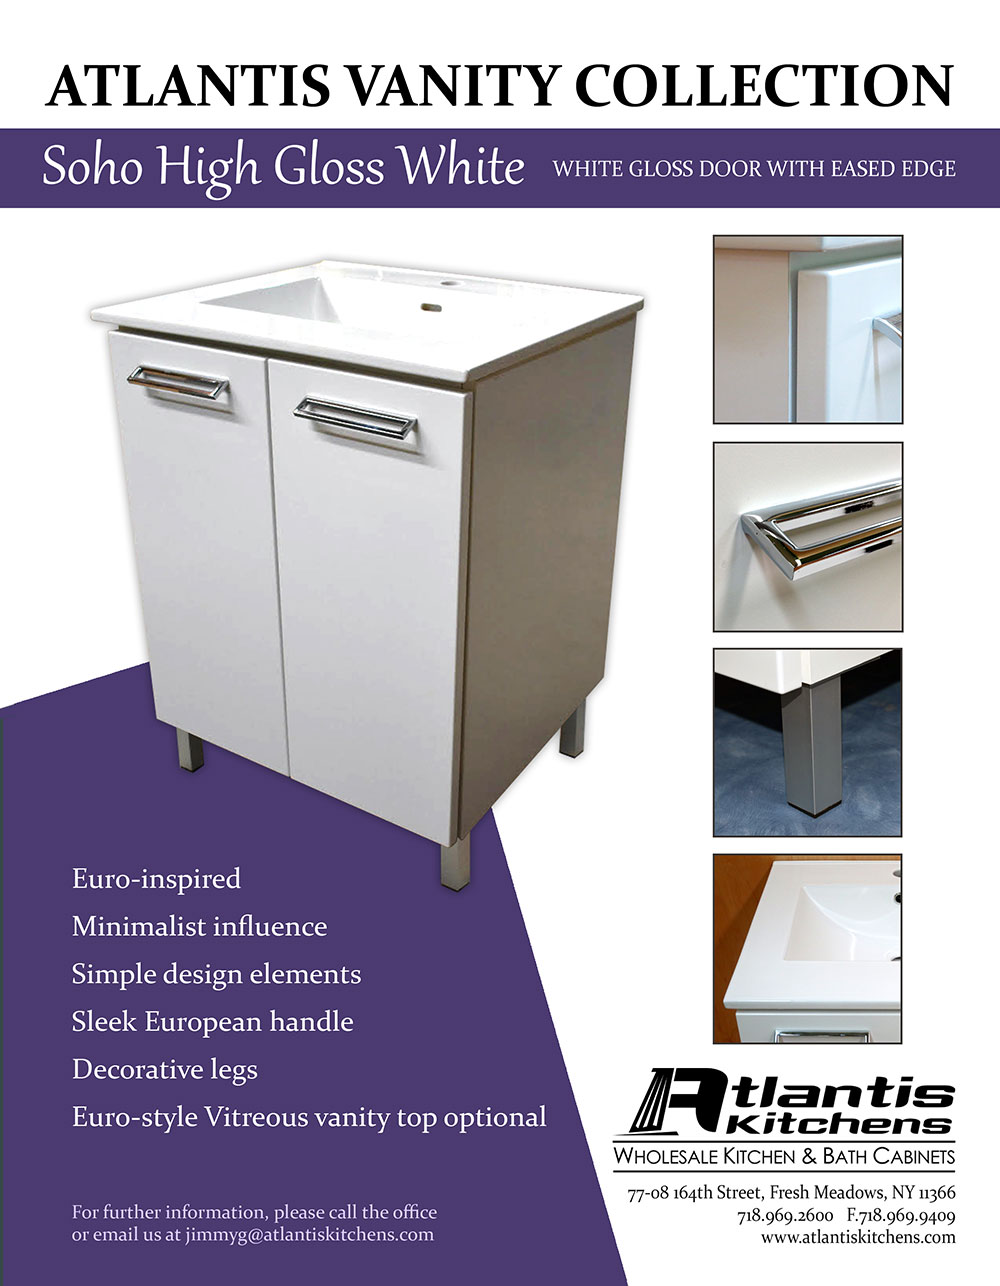 Atlantis Vanity Collection Soho High Gloss White